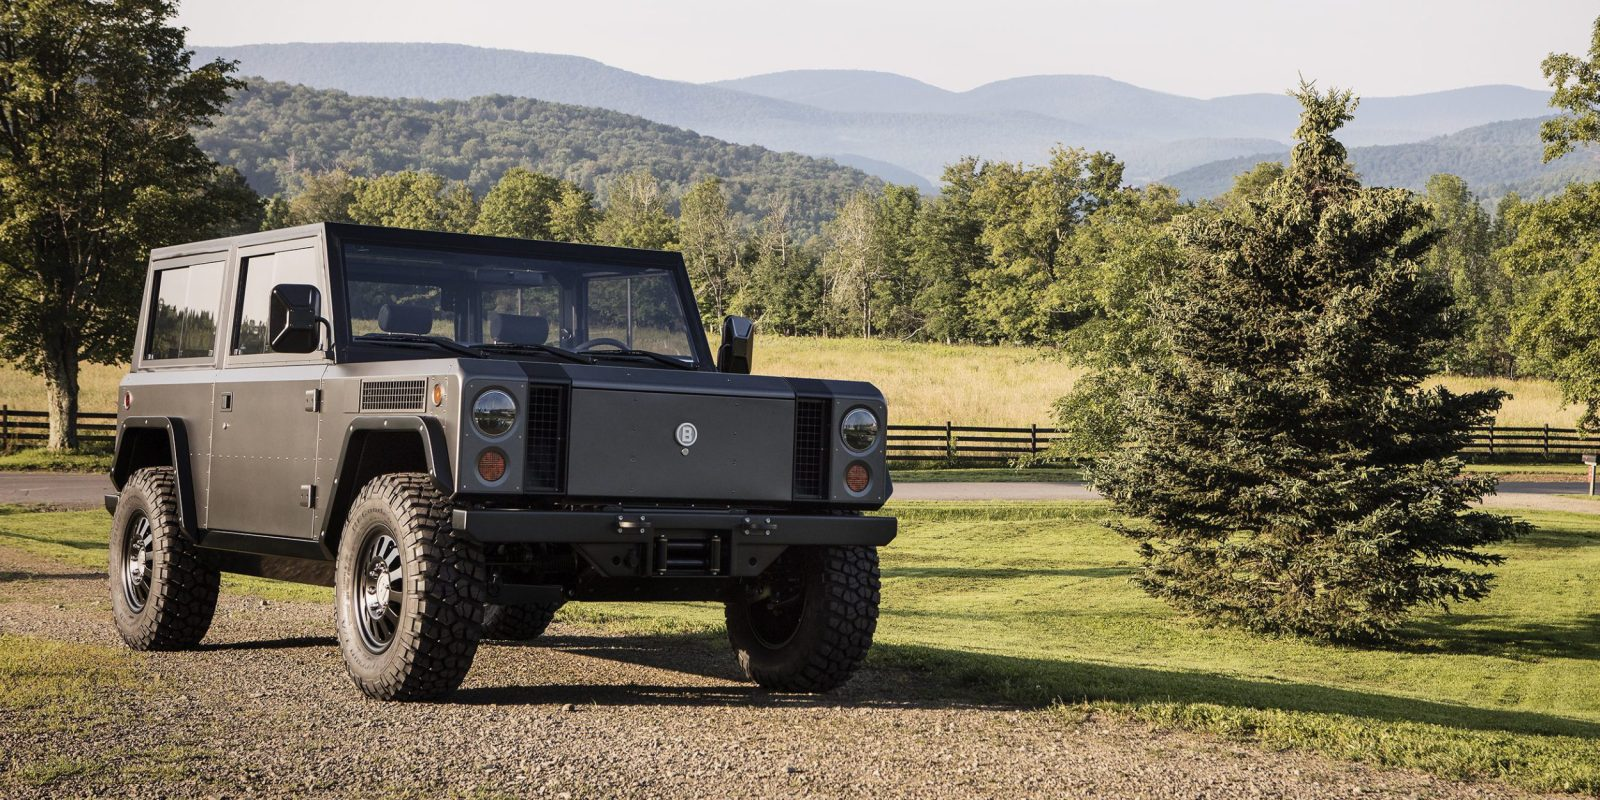 Bollinger Announces Partner To Bring Its All Electric Utility Truck Production Next Year